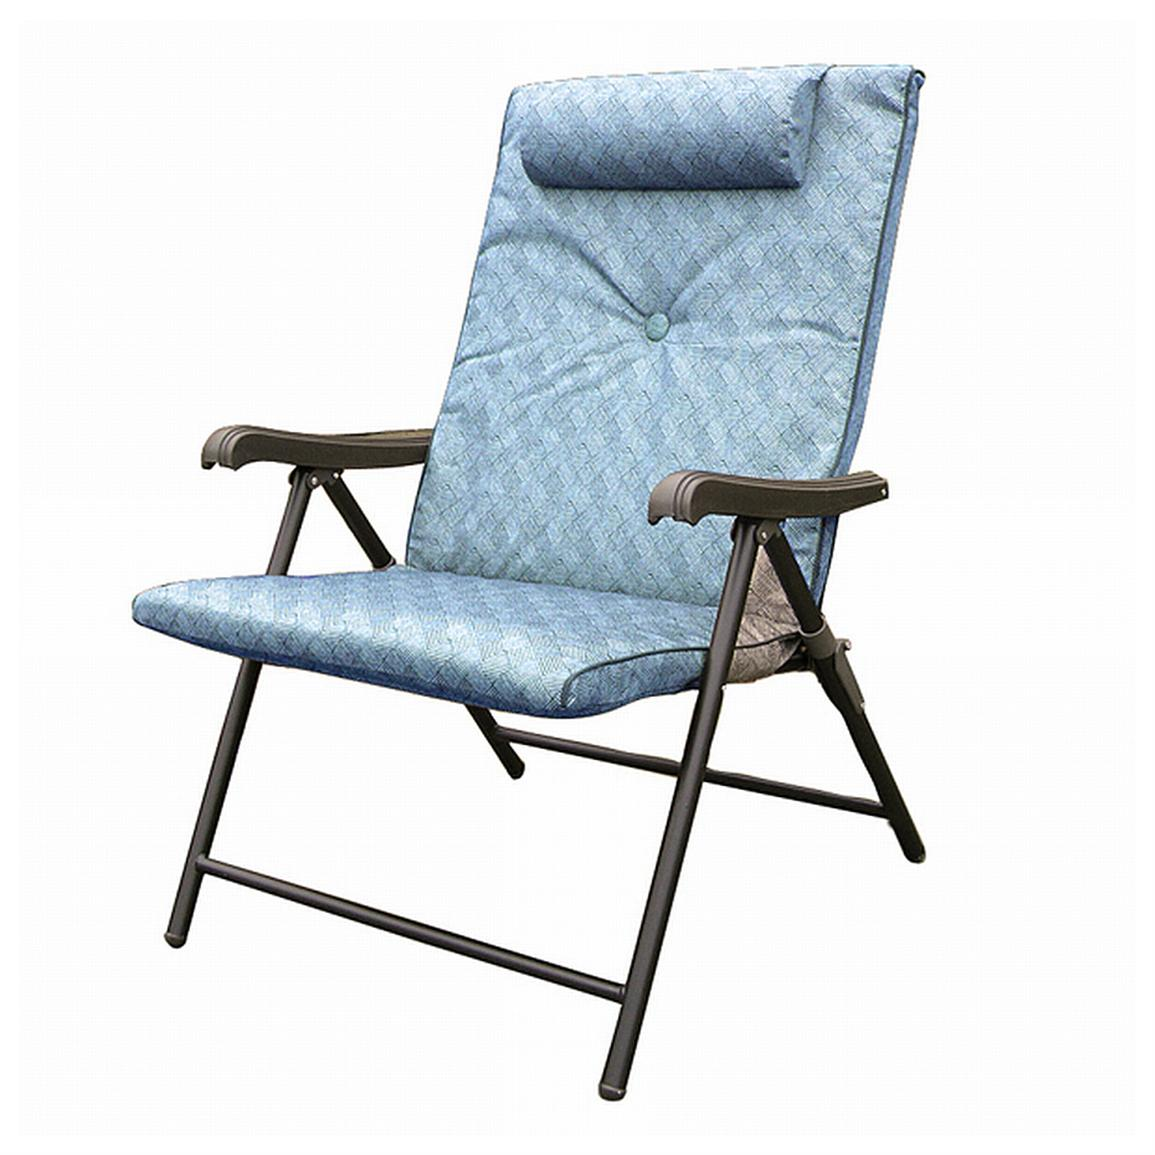 Prime Plus Folding Chair Blue  425486 Chairs at